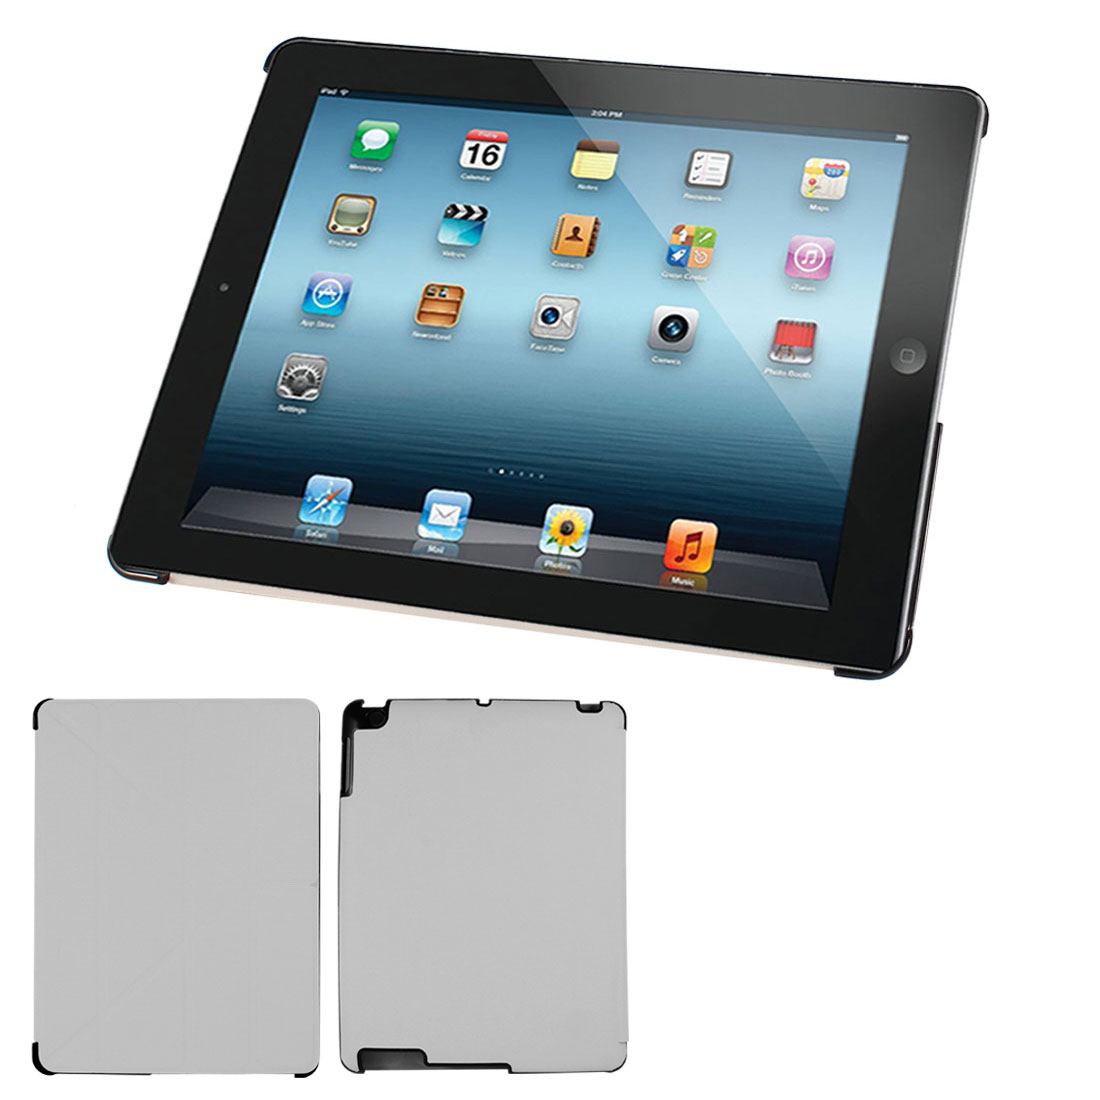 Plaid Prints PU Leather Folio Book Case Cover Stand Gray for iPad 2 3 4